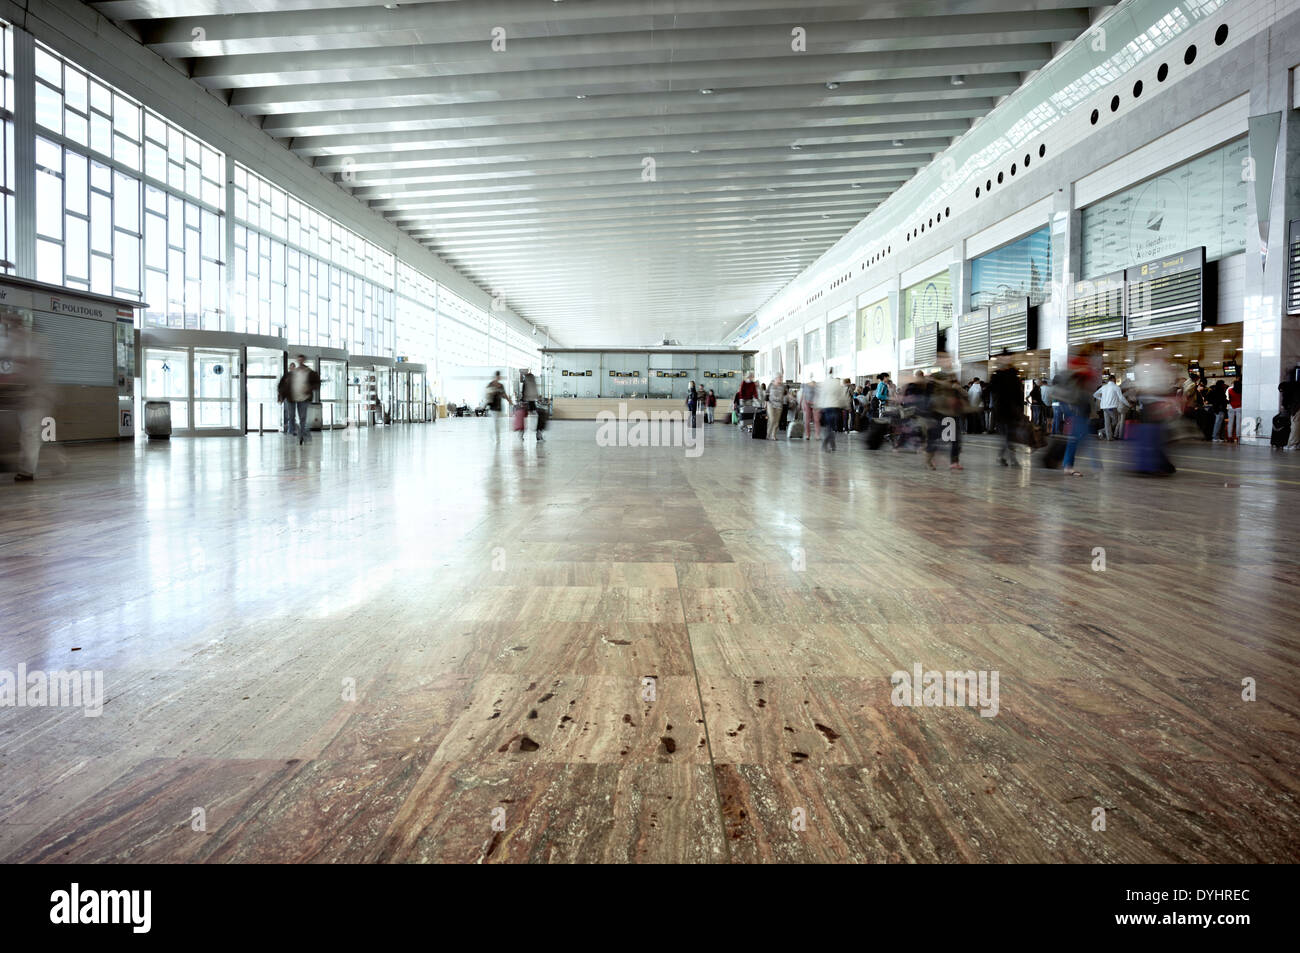 View of one of the terminals at El Prat Airport in Barcelona, Spain. - Stock Image